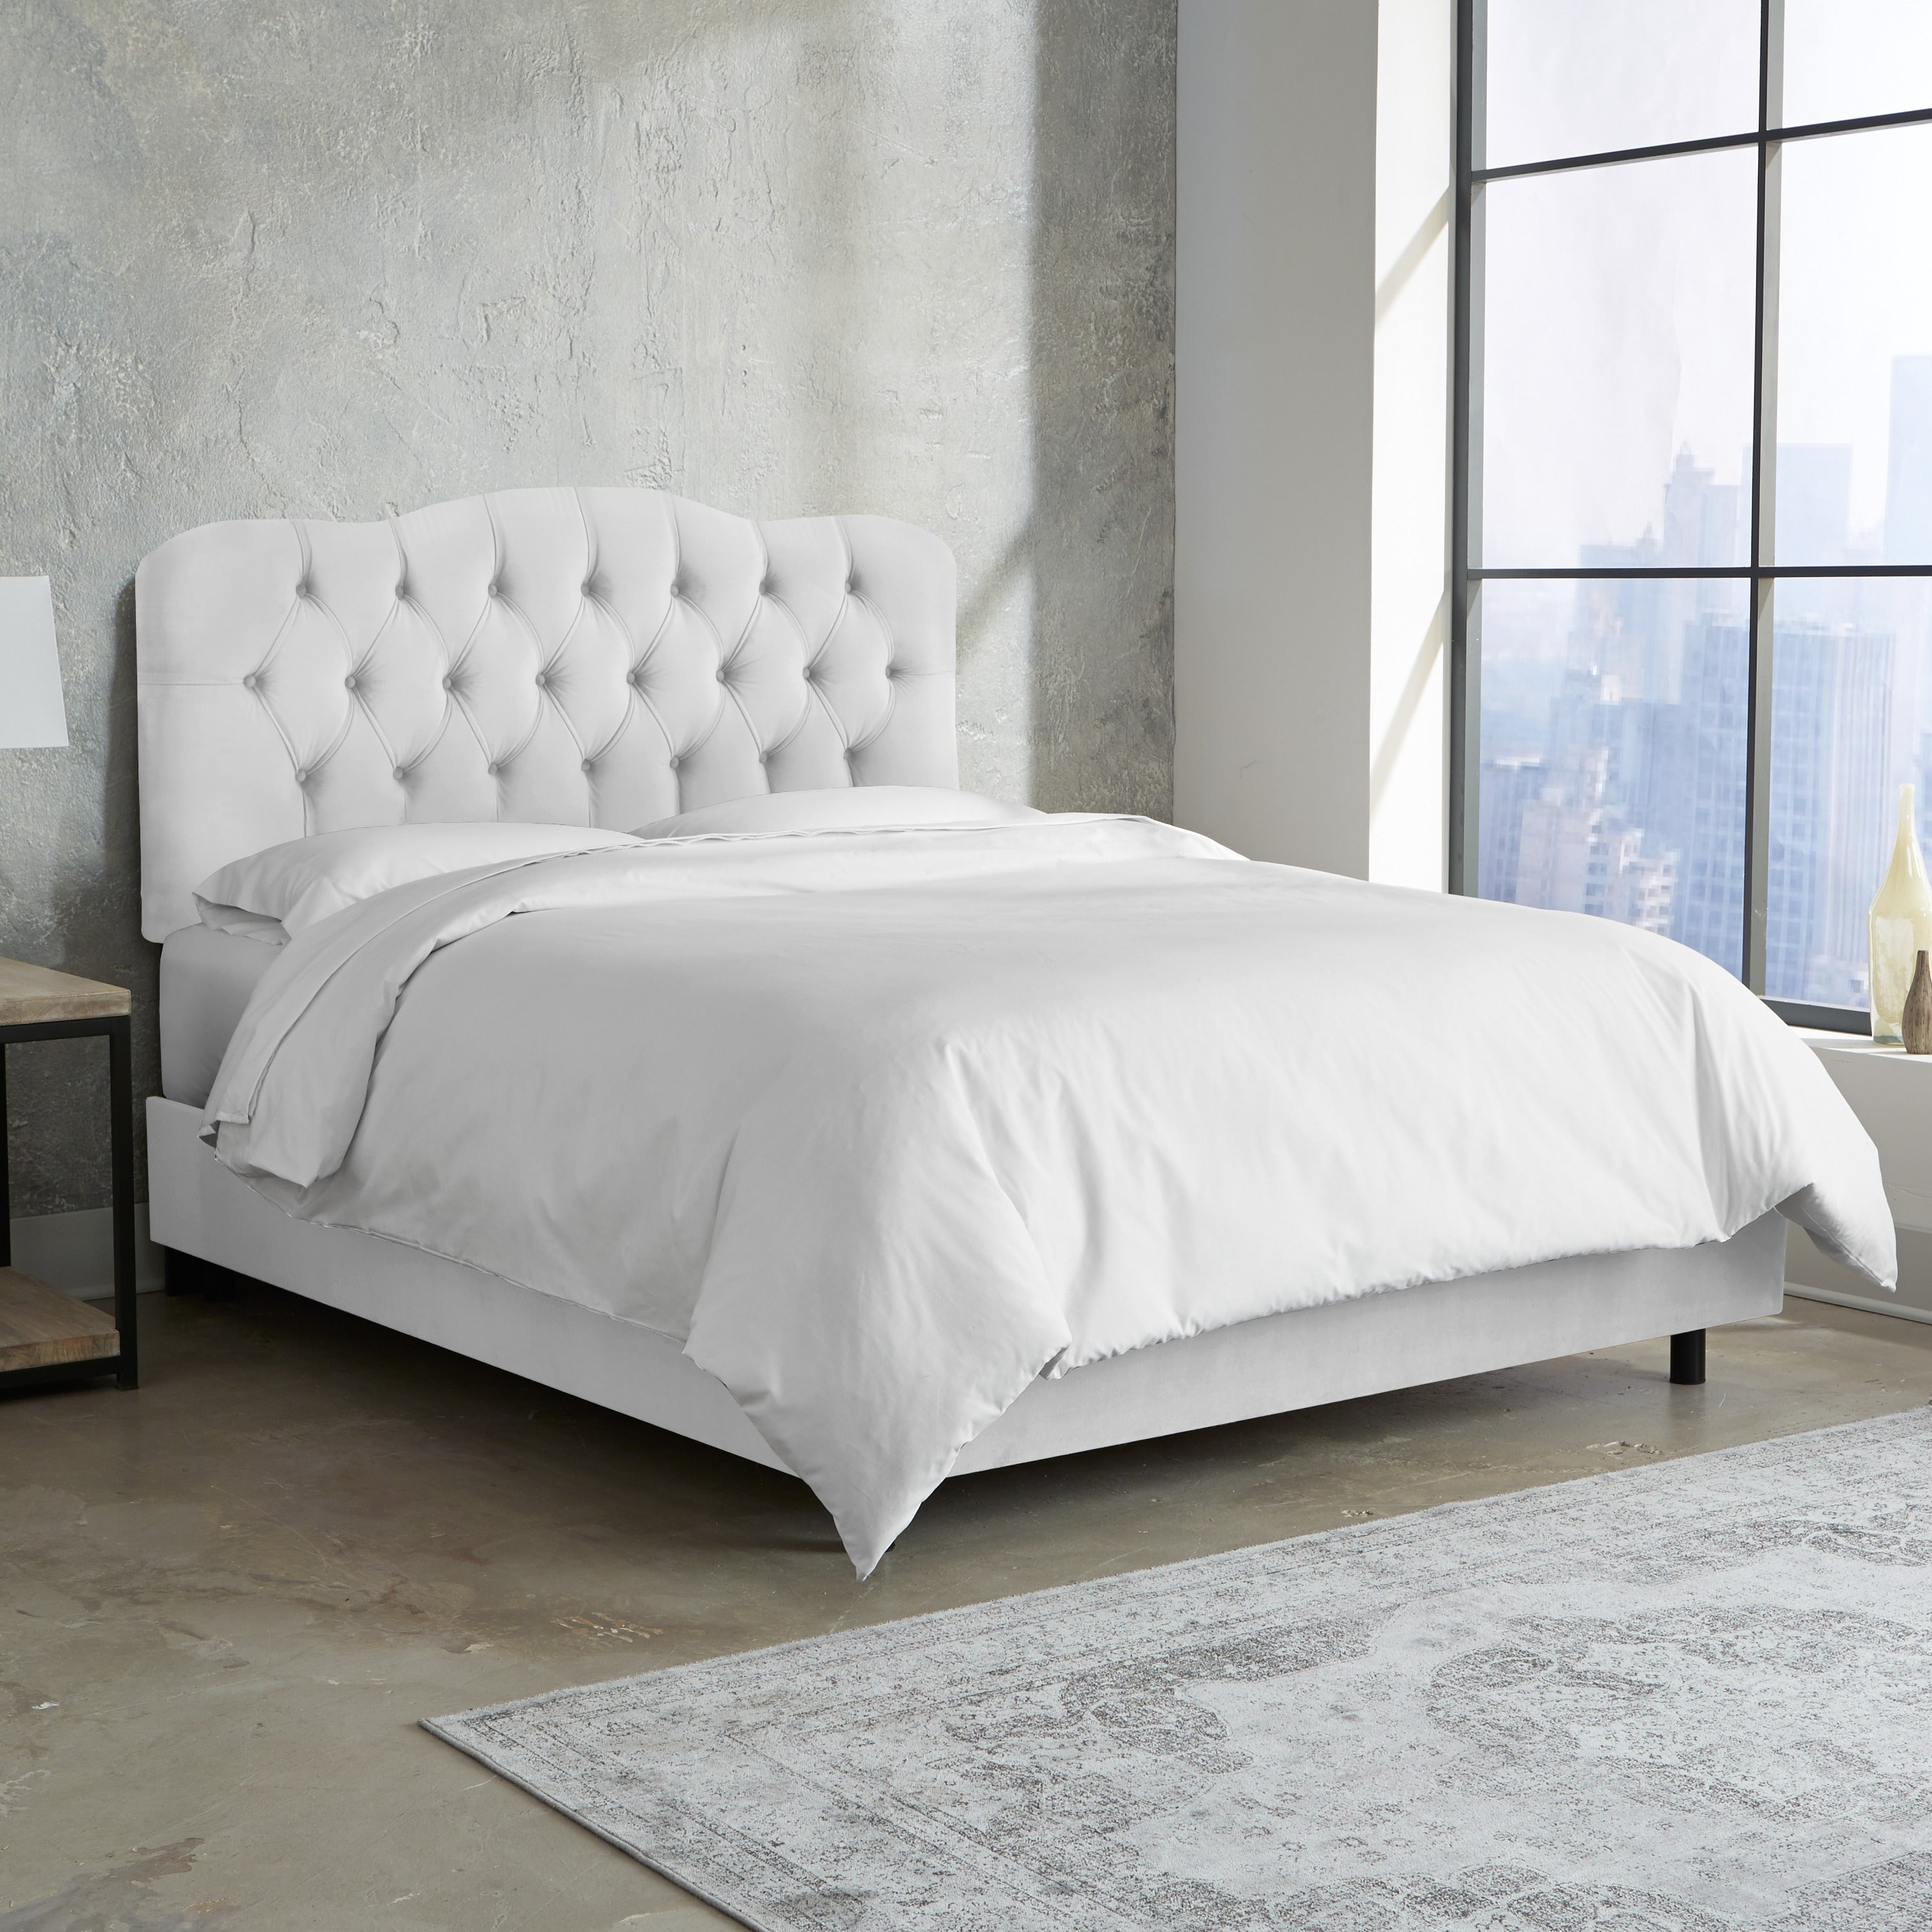 Picture of: Buy White Upholstered Tufted Beds Online At Overstock Our Best Bedroom Furniture Deals